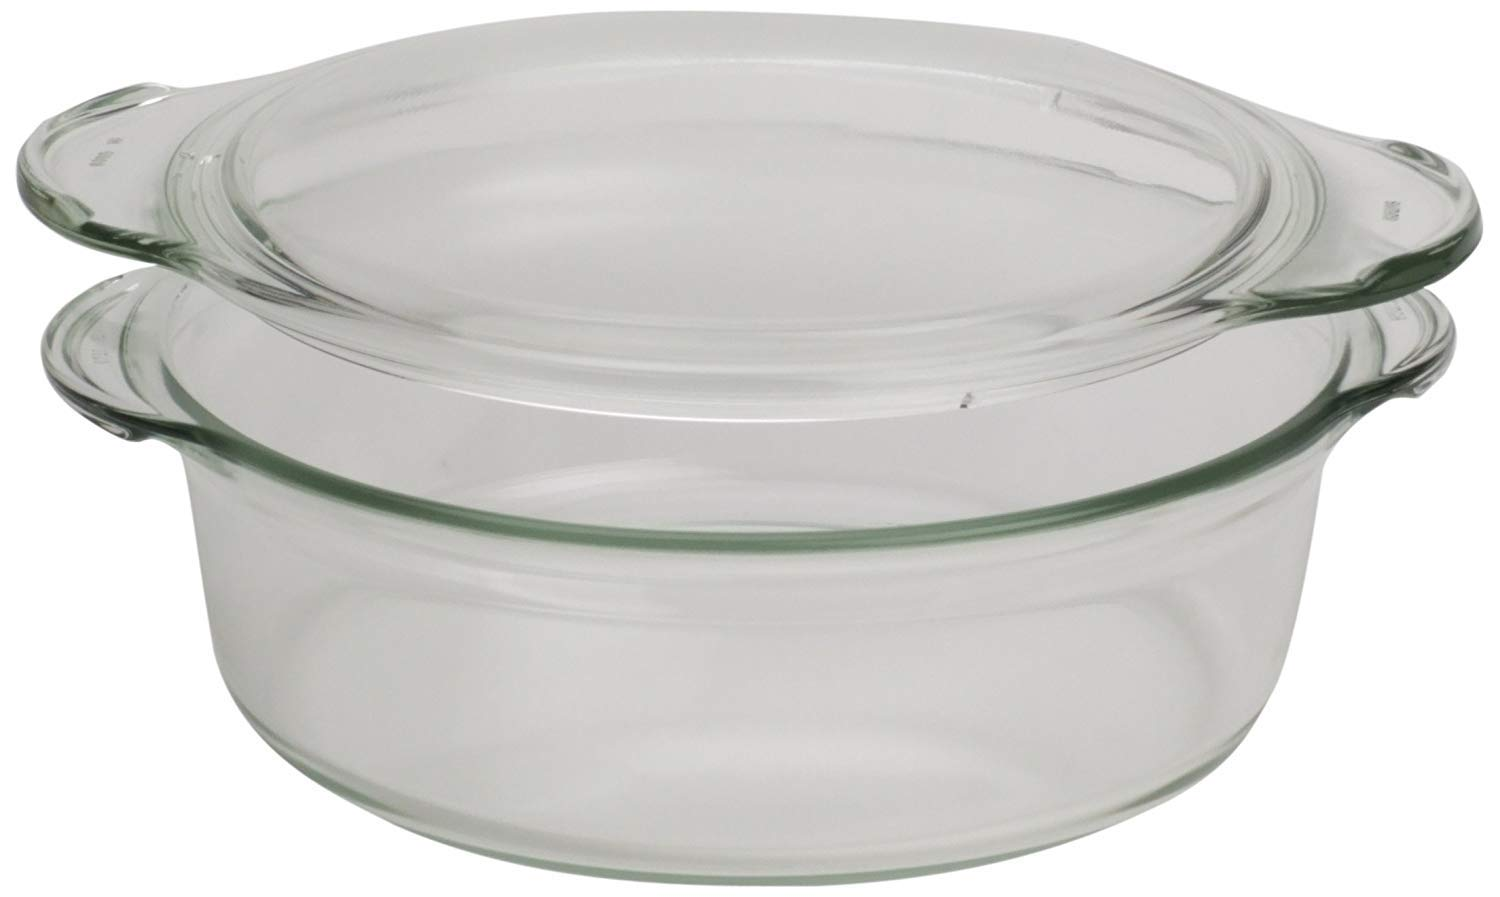 Clear Round Glass Casserole by Simax | Deep Dish, With Lid, Heat, Cold and Shock Proof, Made in Europe, 1.5 Quart by SIMAX